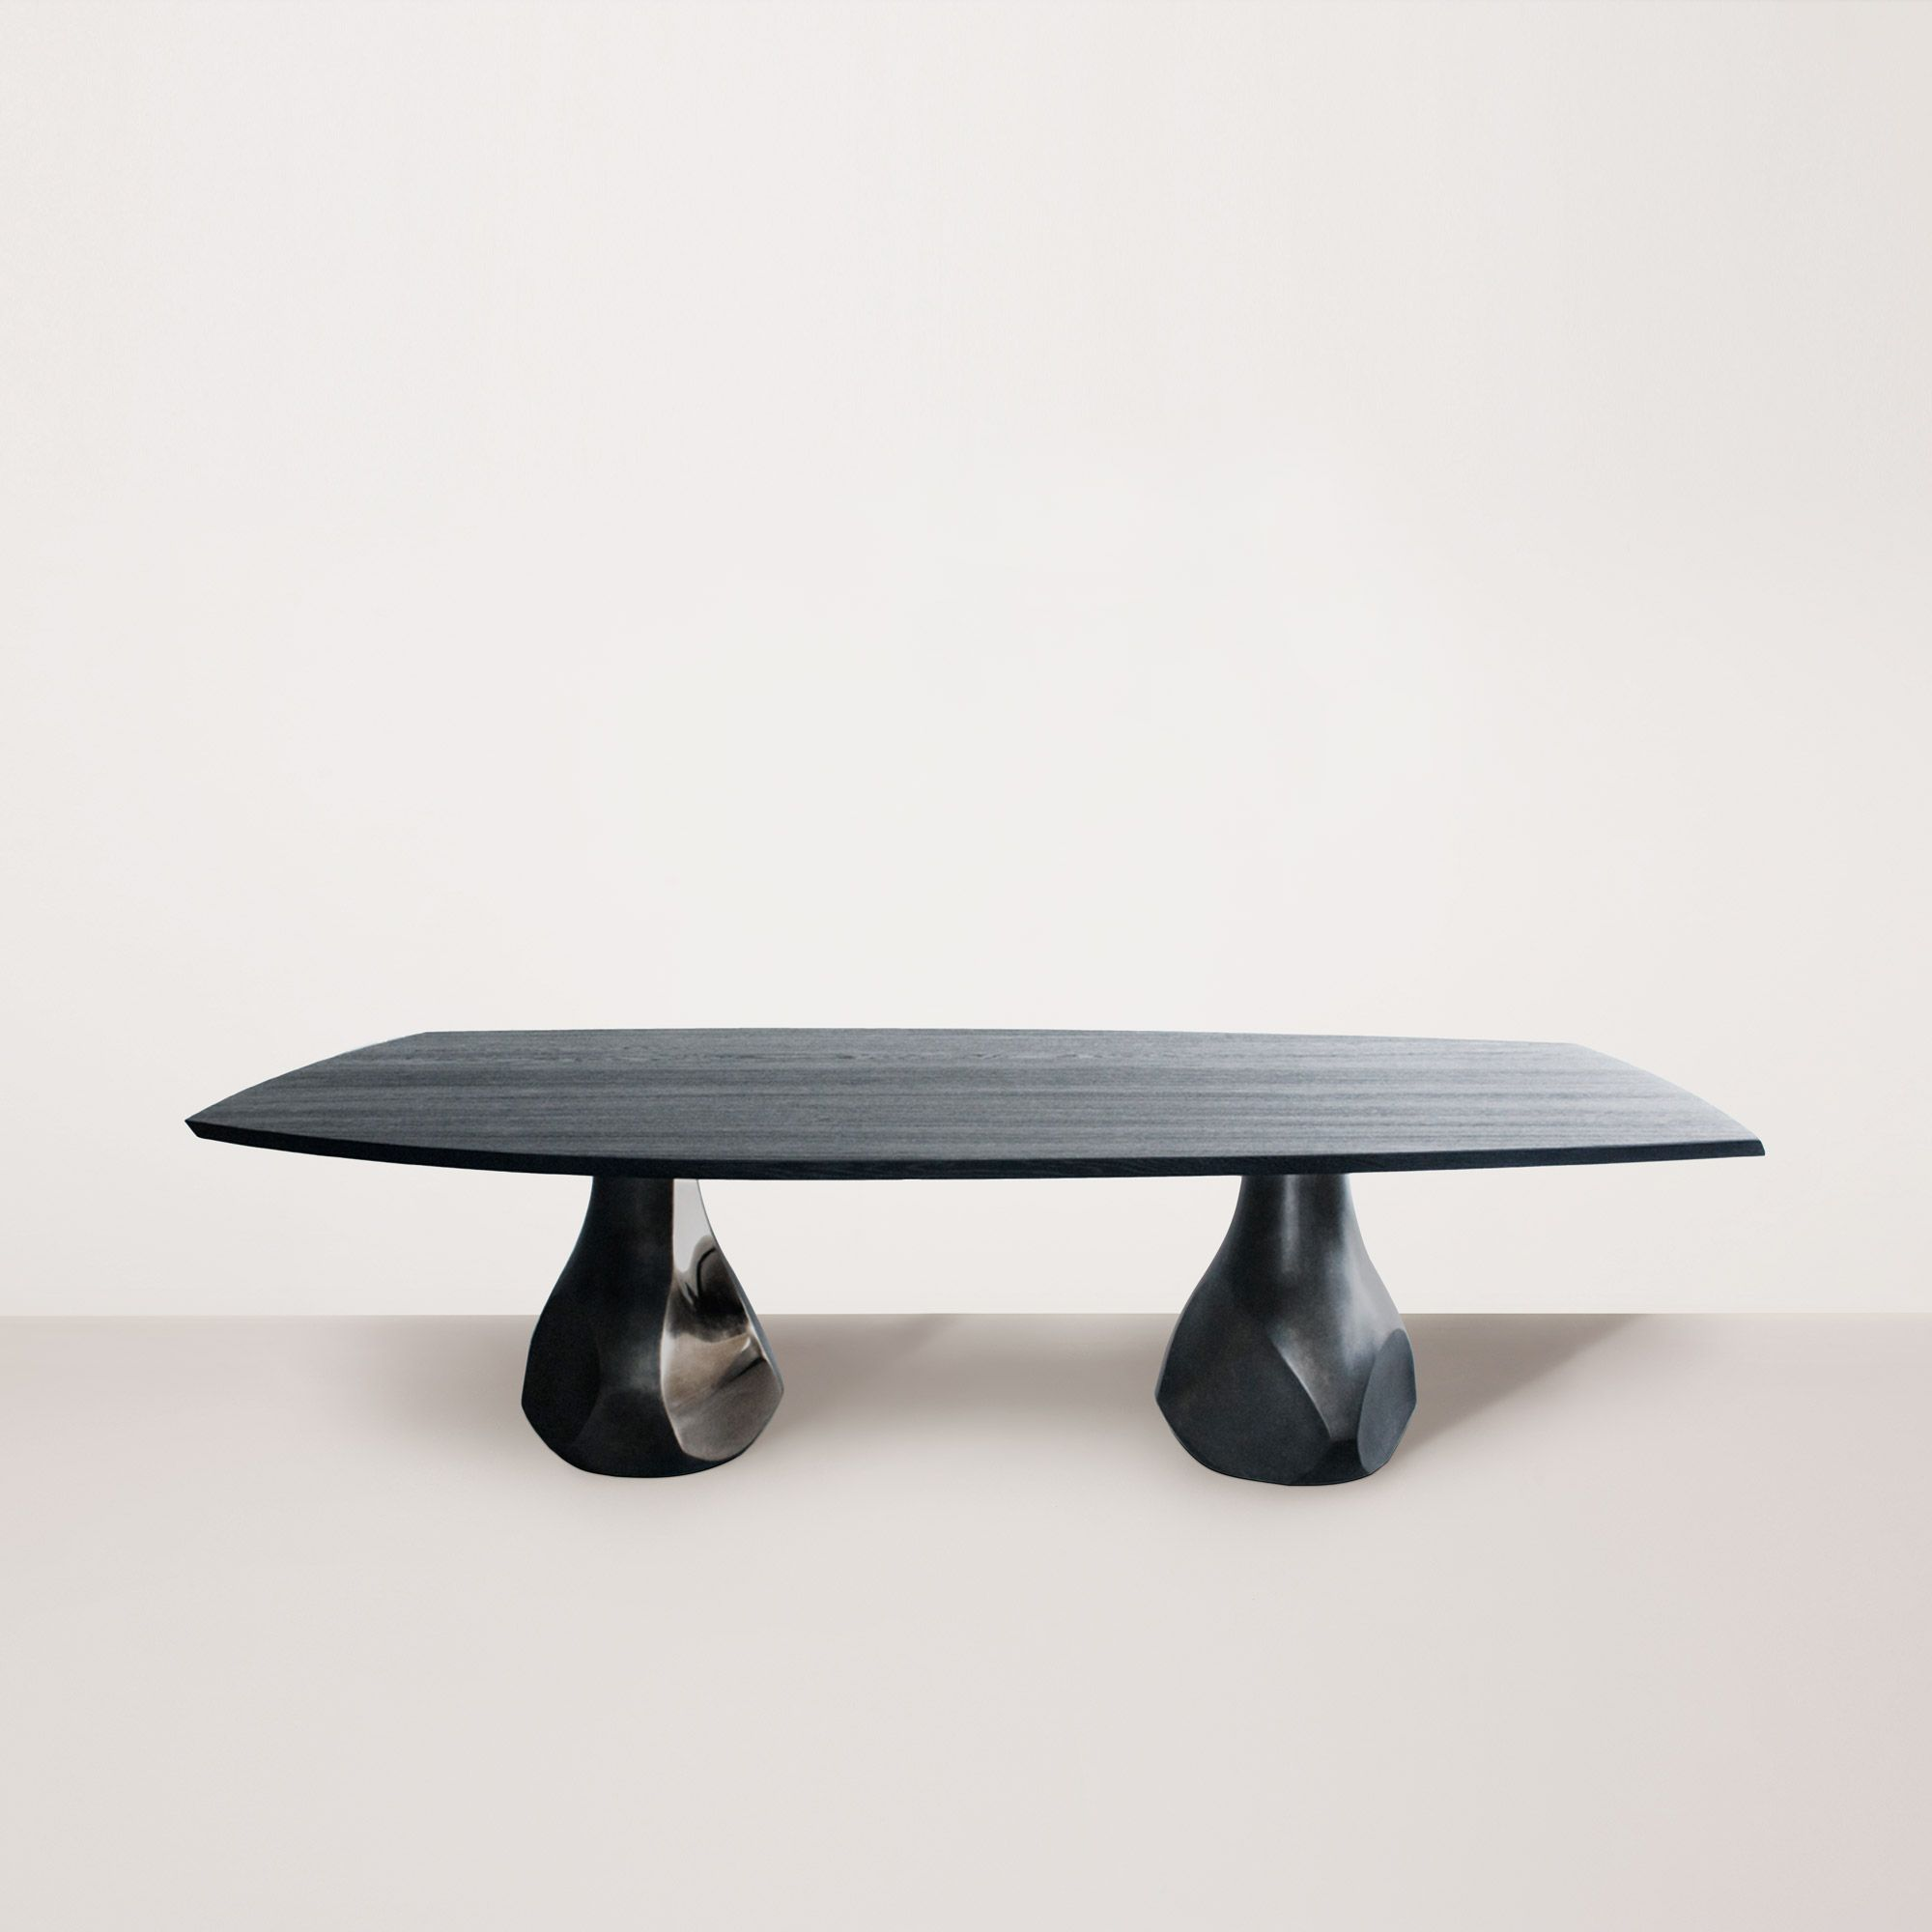 At The Table Or On The Table Pukka Dining Table By Van Rossum Dining Table Table Coffee Table